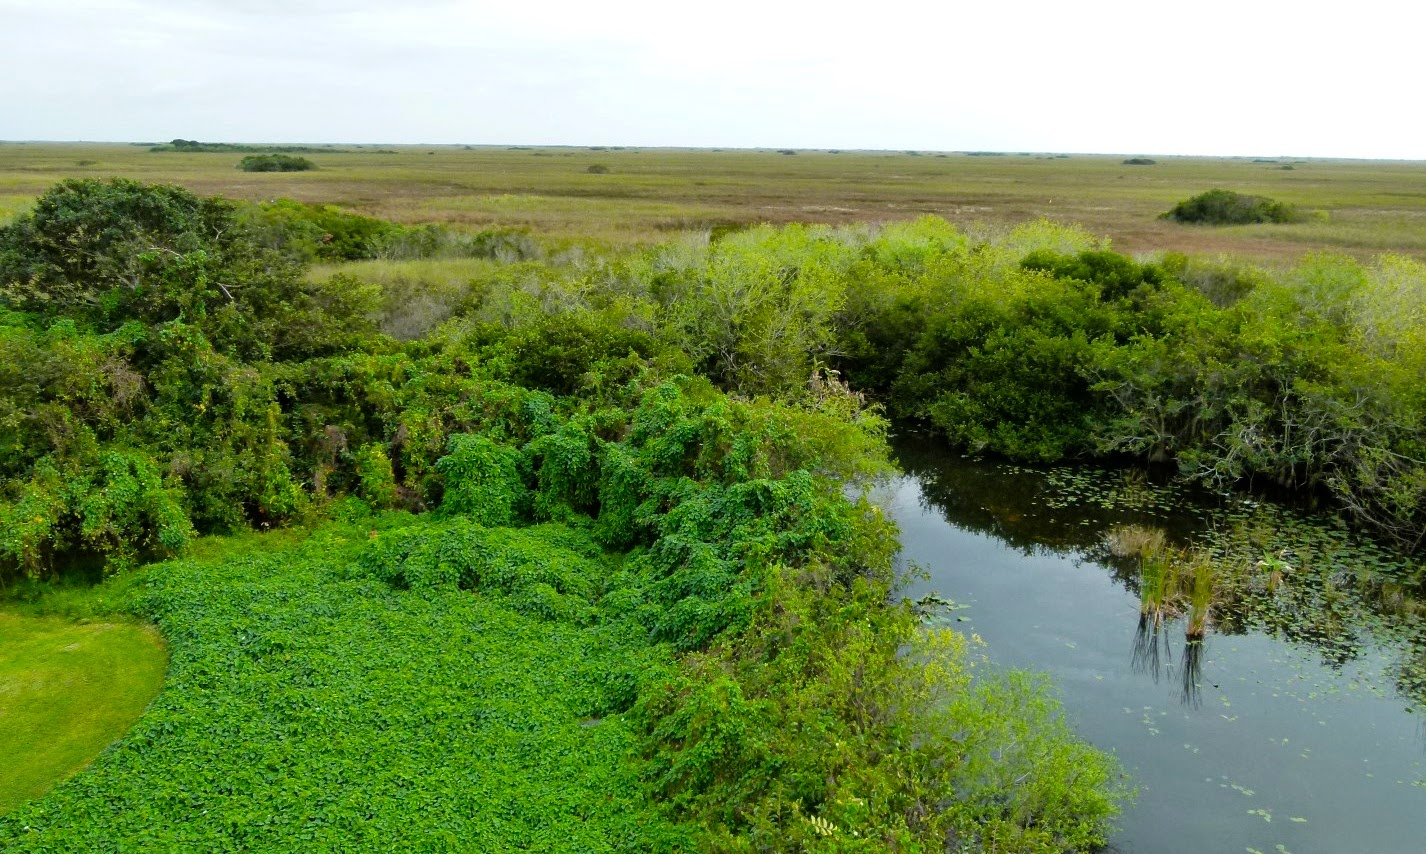 Scenery in Shark Valley, Everglades National Park